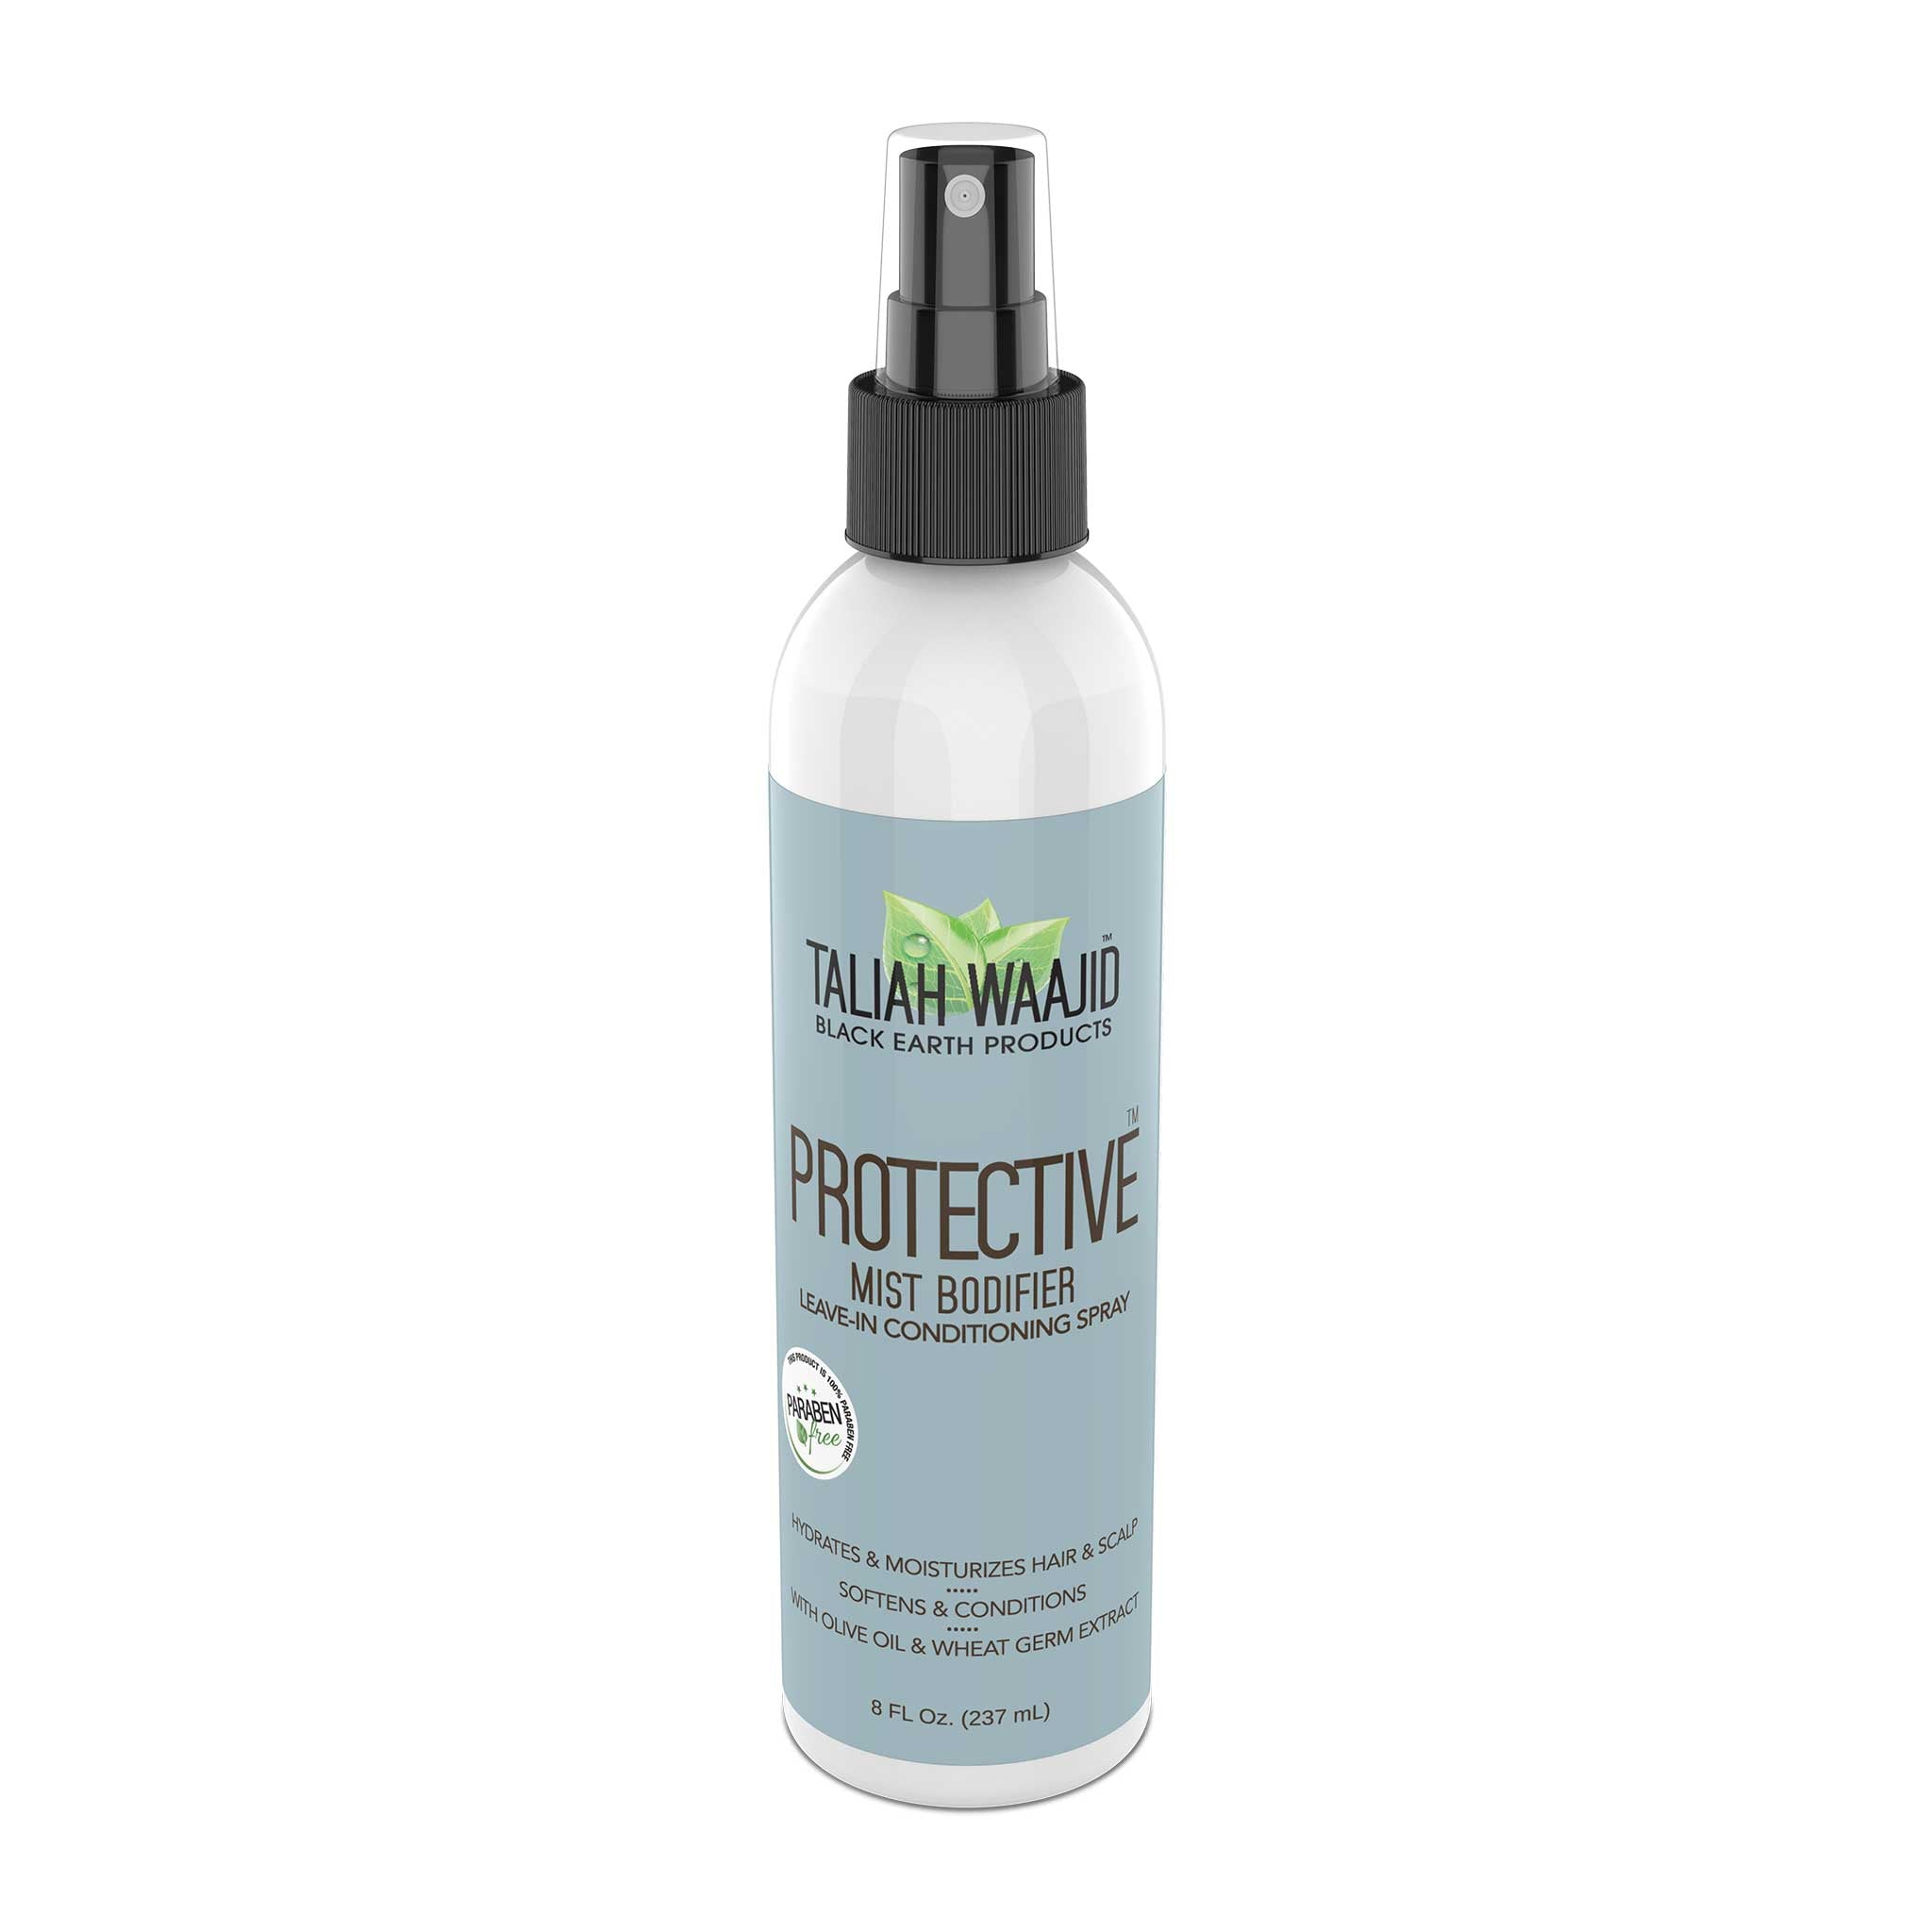 Black Earth Products Protective Mist Bodifier 8oz